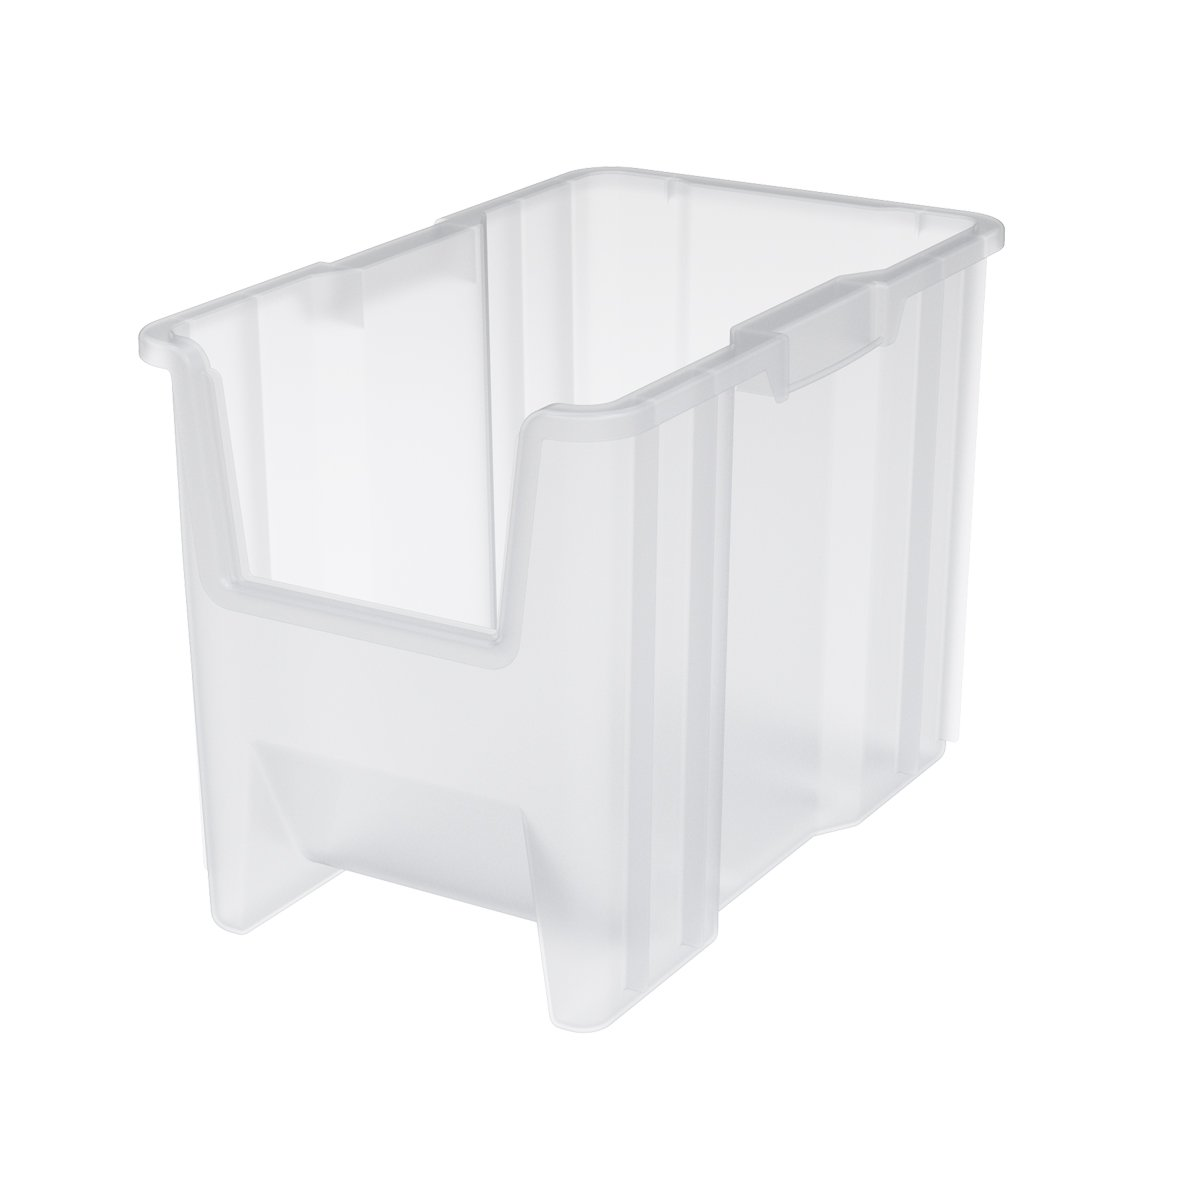 Akro-Mils 13014 Stak-N-Store Stacking Hopper Front Plastic Storage Bin, Clear, Case of 4